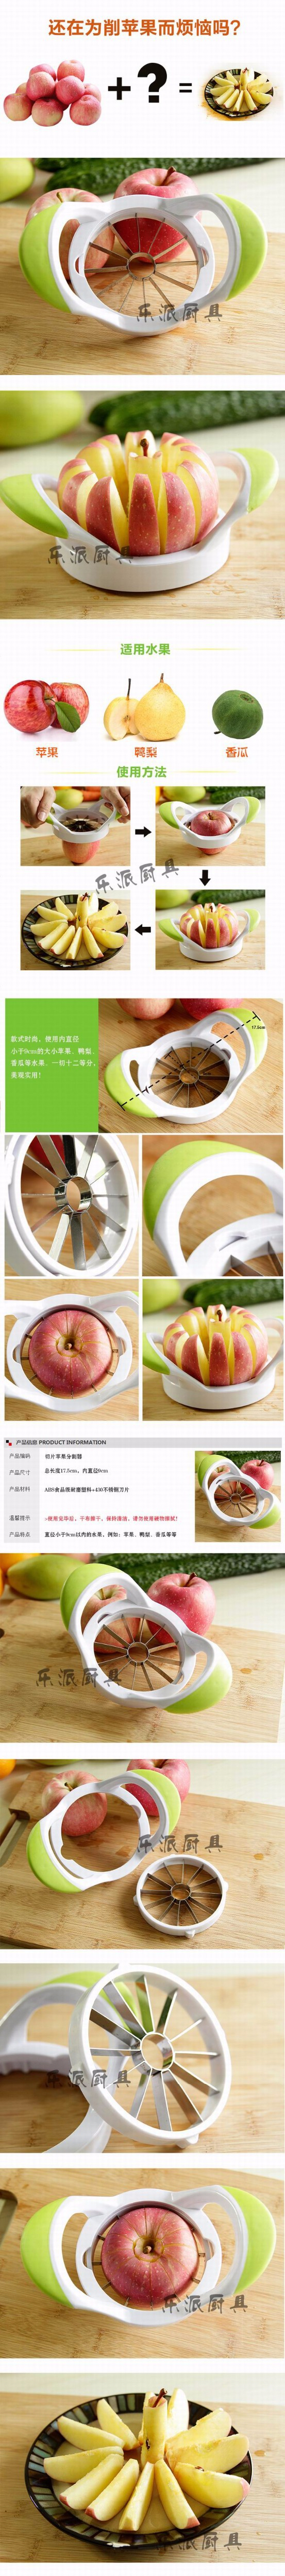 High-quality kitchen creative stainless steel fruit slicer cut apple fruit device Pear Muskmelon cutter separator free shipping 10